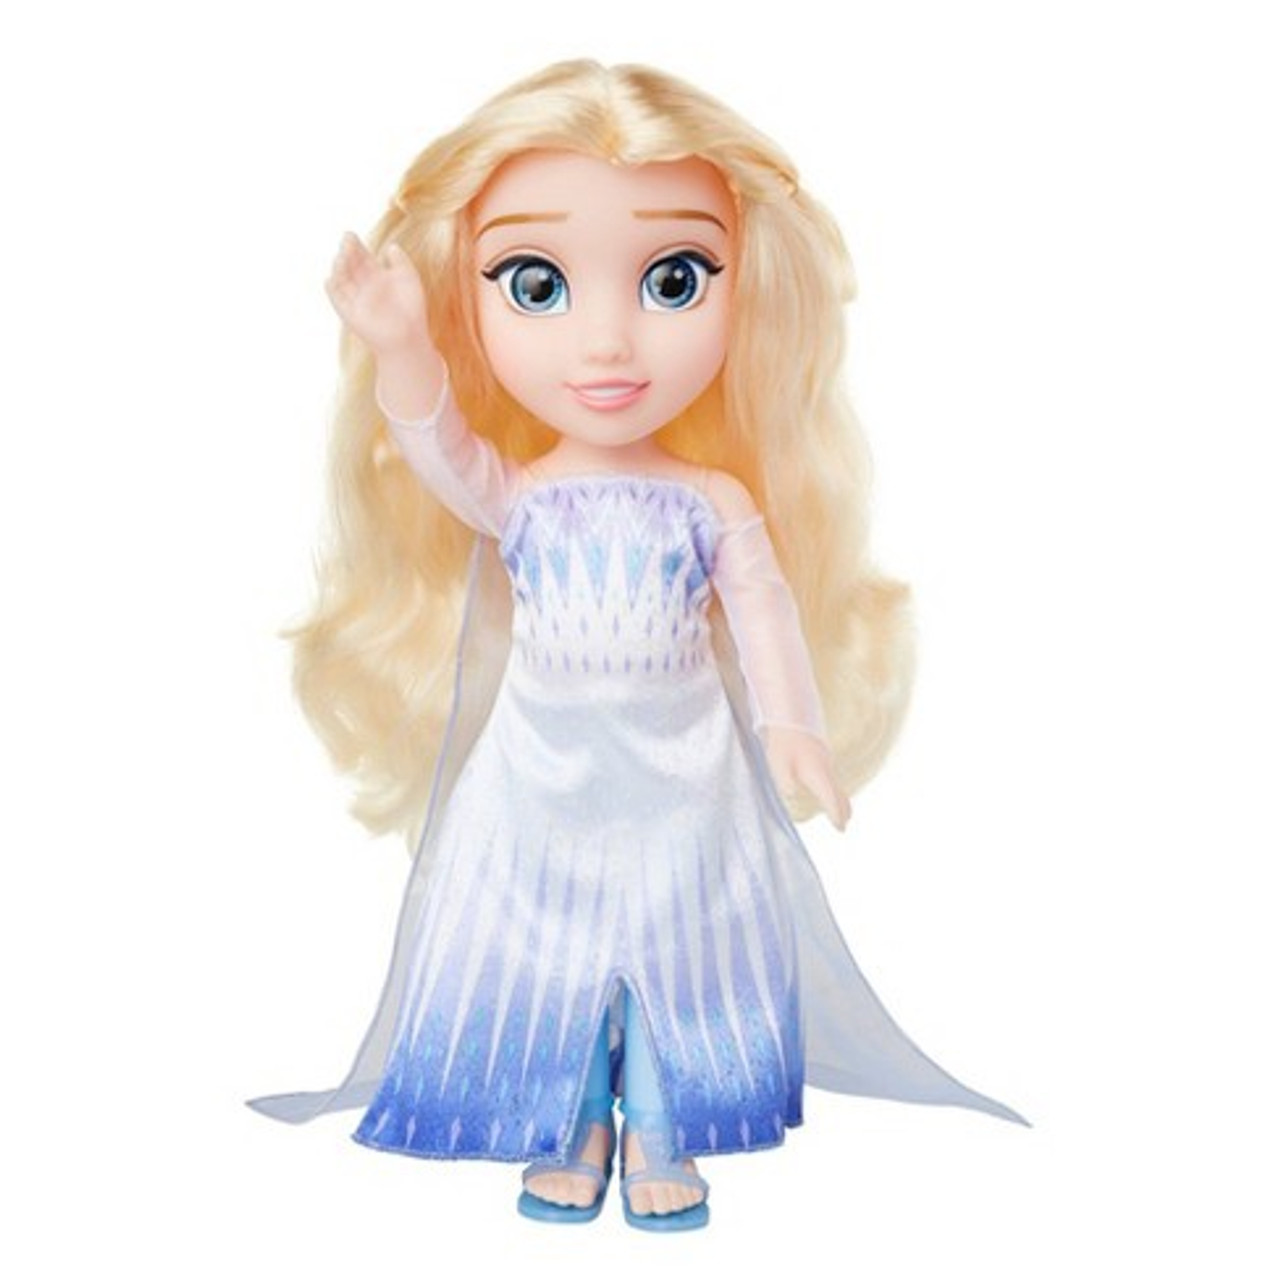 FROZEN II ELSA THE SNOW QUEEN DOLL